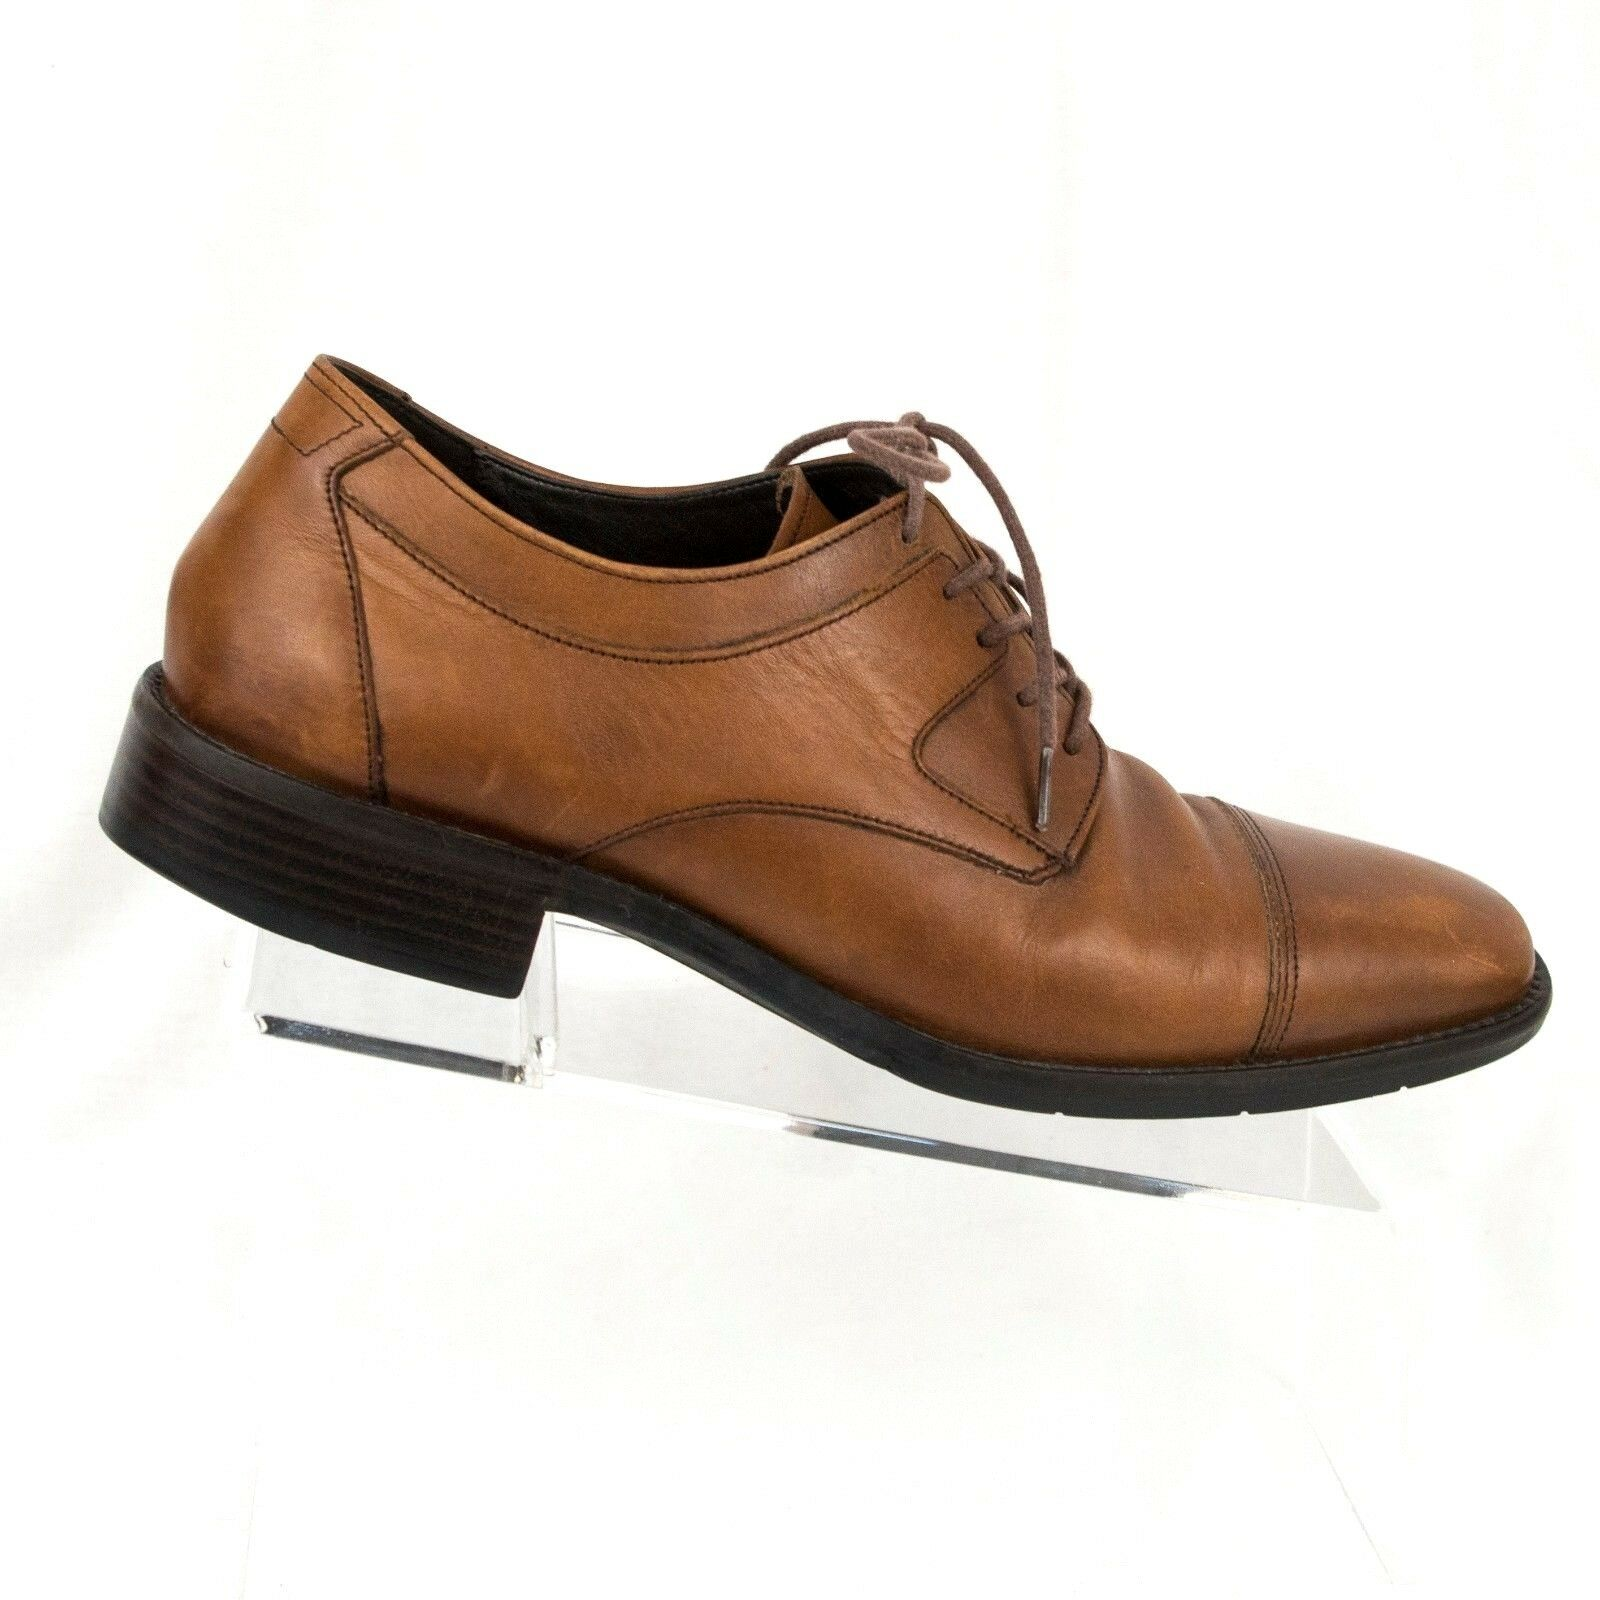 Johnston and Murphy 8.5 M 11560 Brown Leather Cap Toe Oxford 613 Lace up